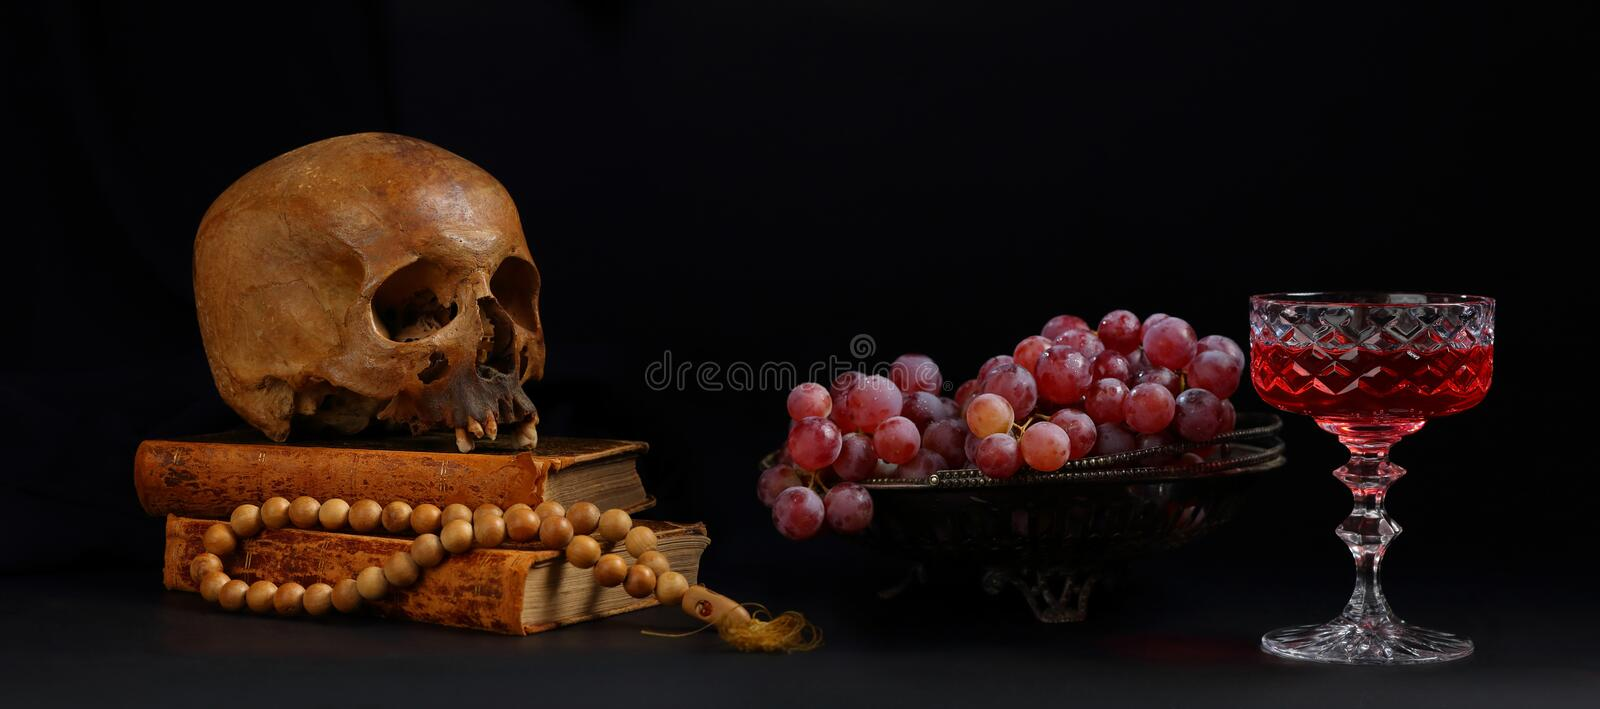 Still life with a skull, a vase of grapes and a glass of red wine stock photo